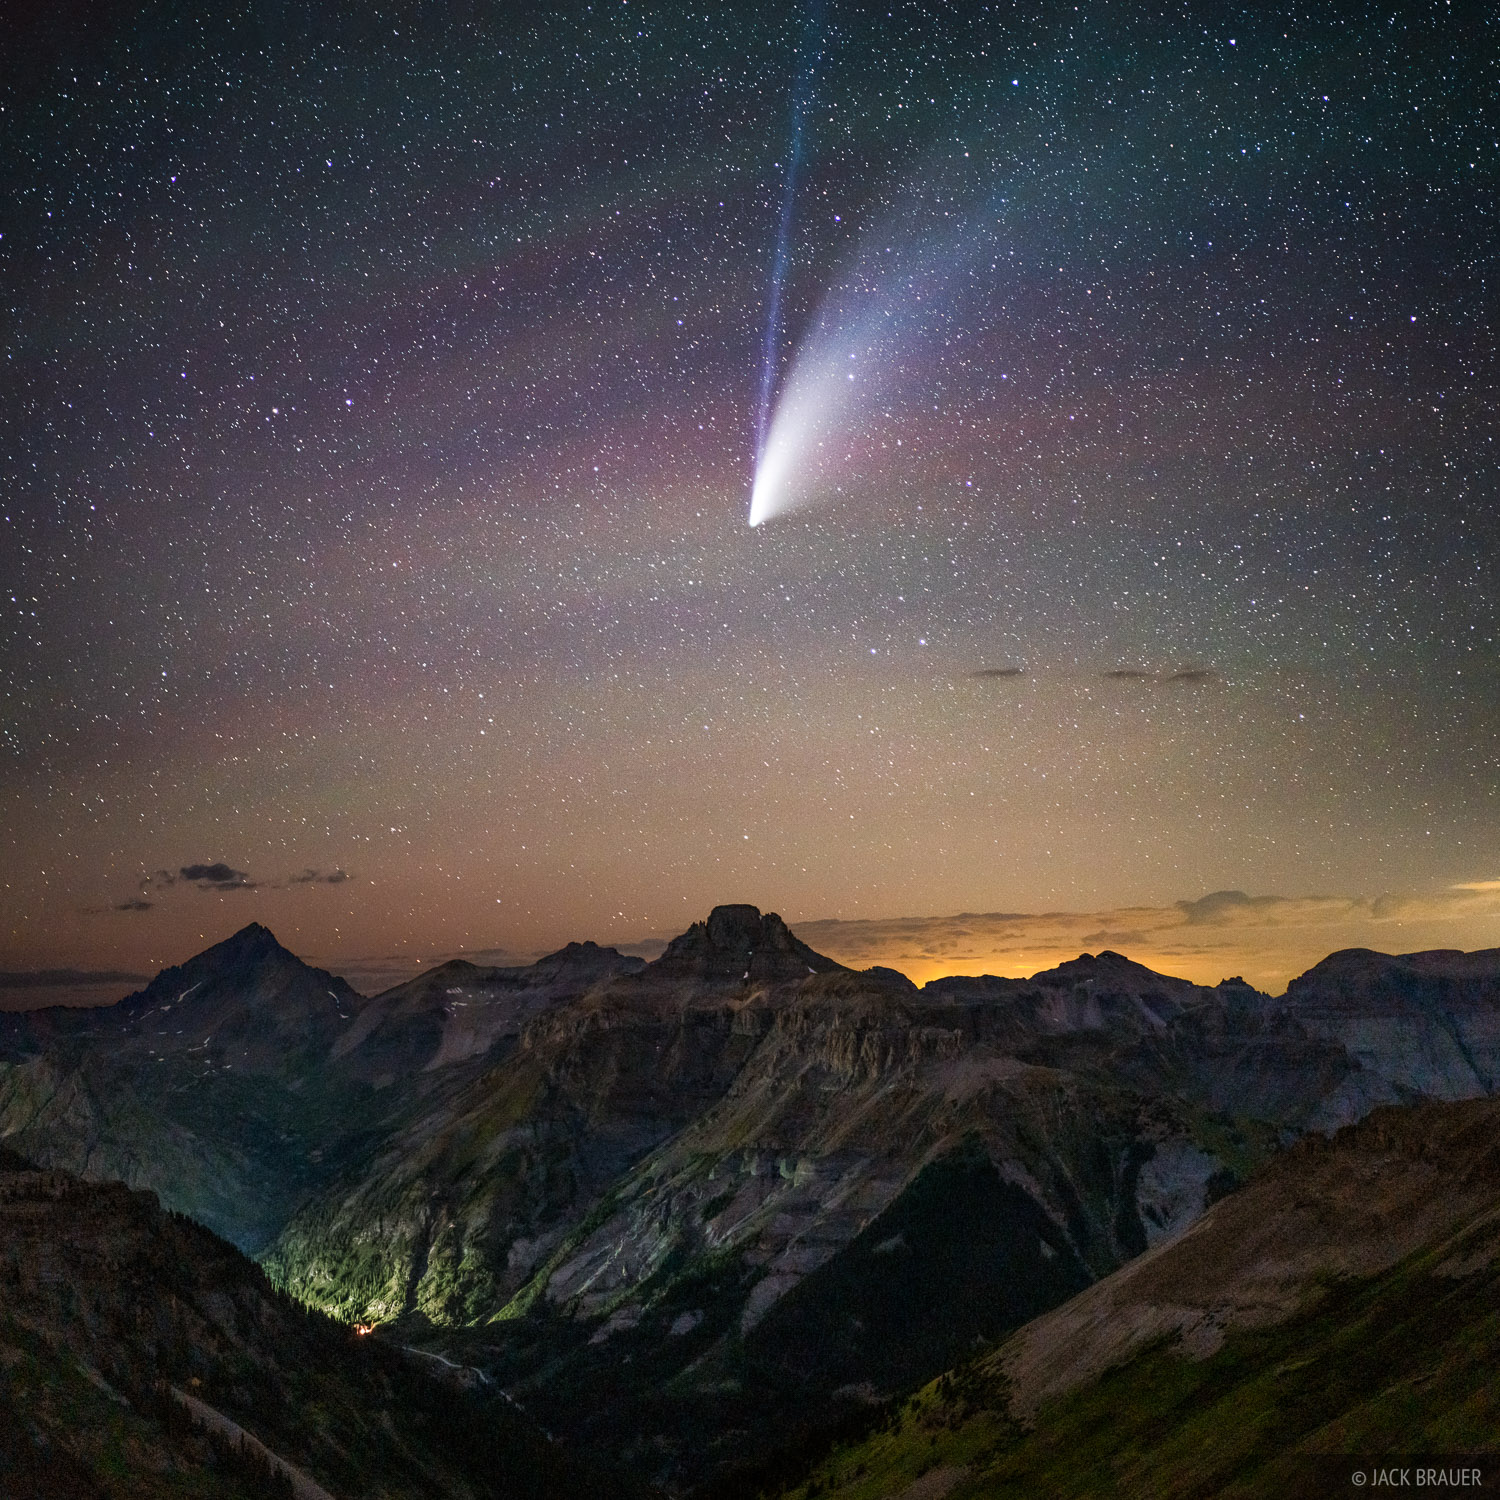 Colorado, Comet NEOWISE, Mount Sneffels, Potosi Peak, San Juan Mountains, Sneffels Range, stars, photo